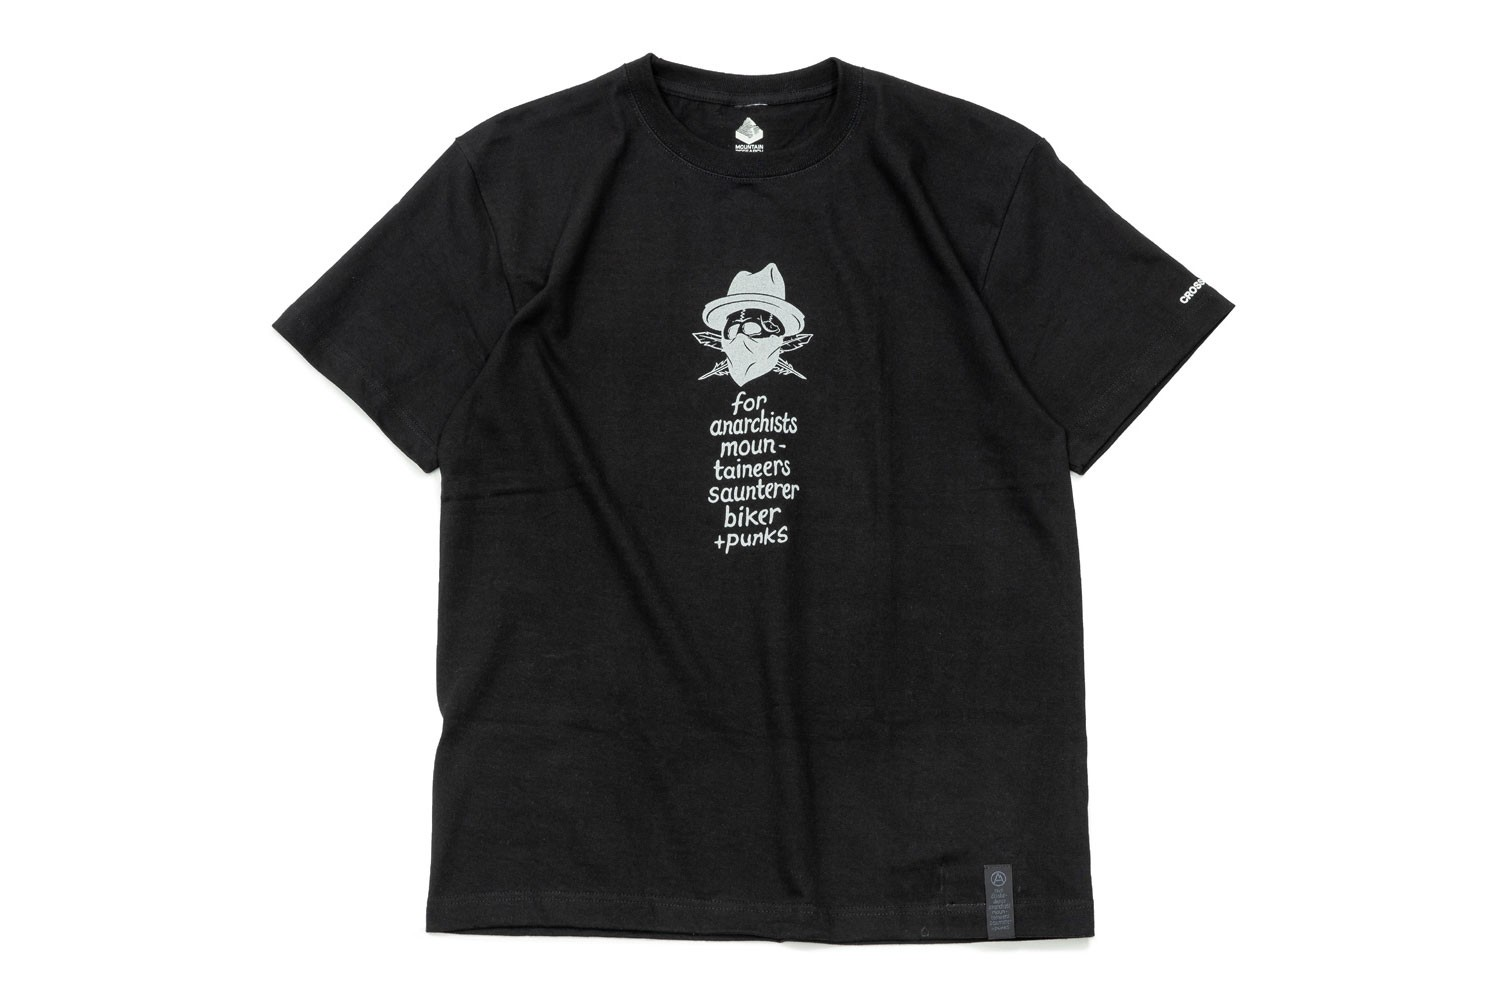 CROSSOVER x Mountain Research Collab Capsule THE SOUTHERN ANARCHO tshirt tee hat bandana skull